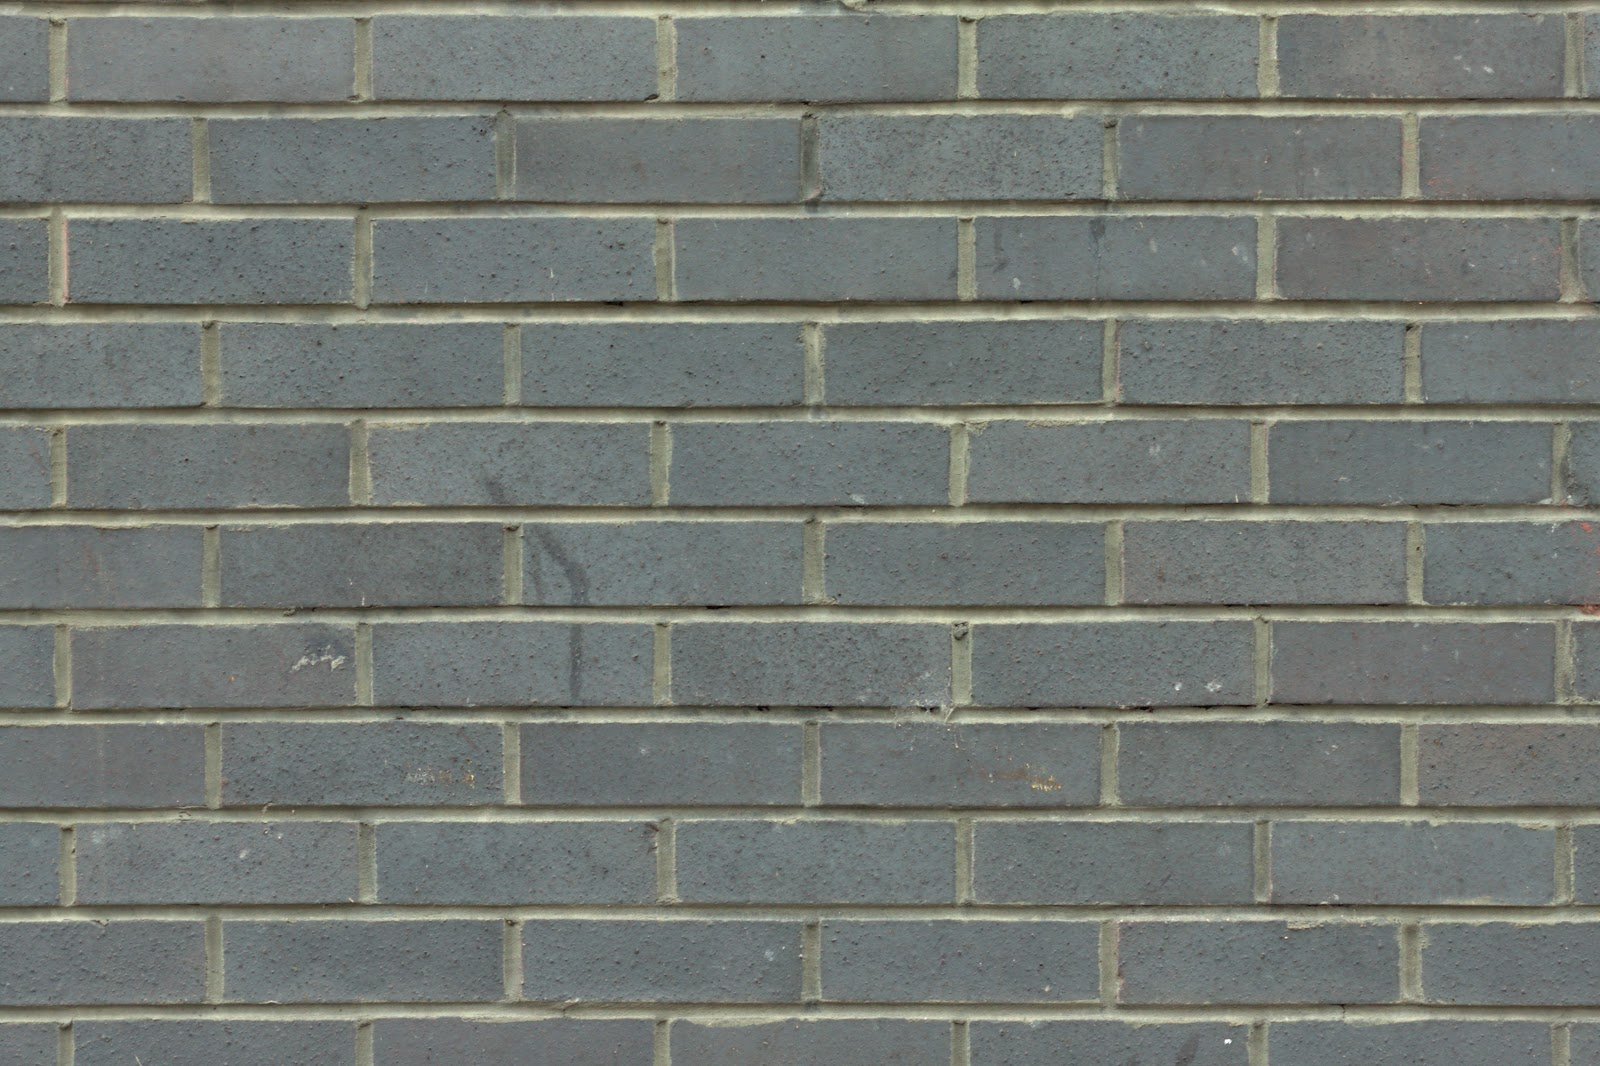 (BRICK 10) wall dark grunge building texture